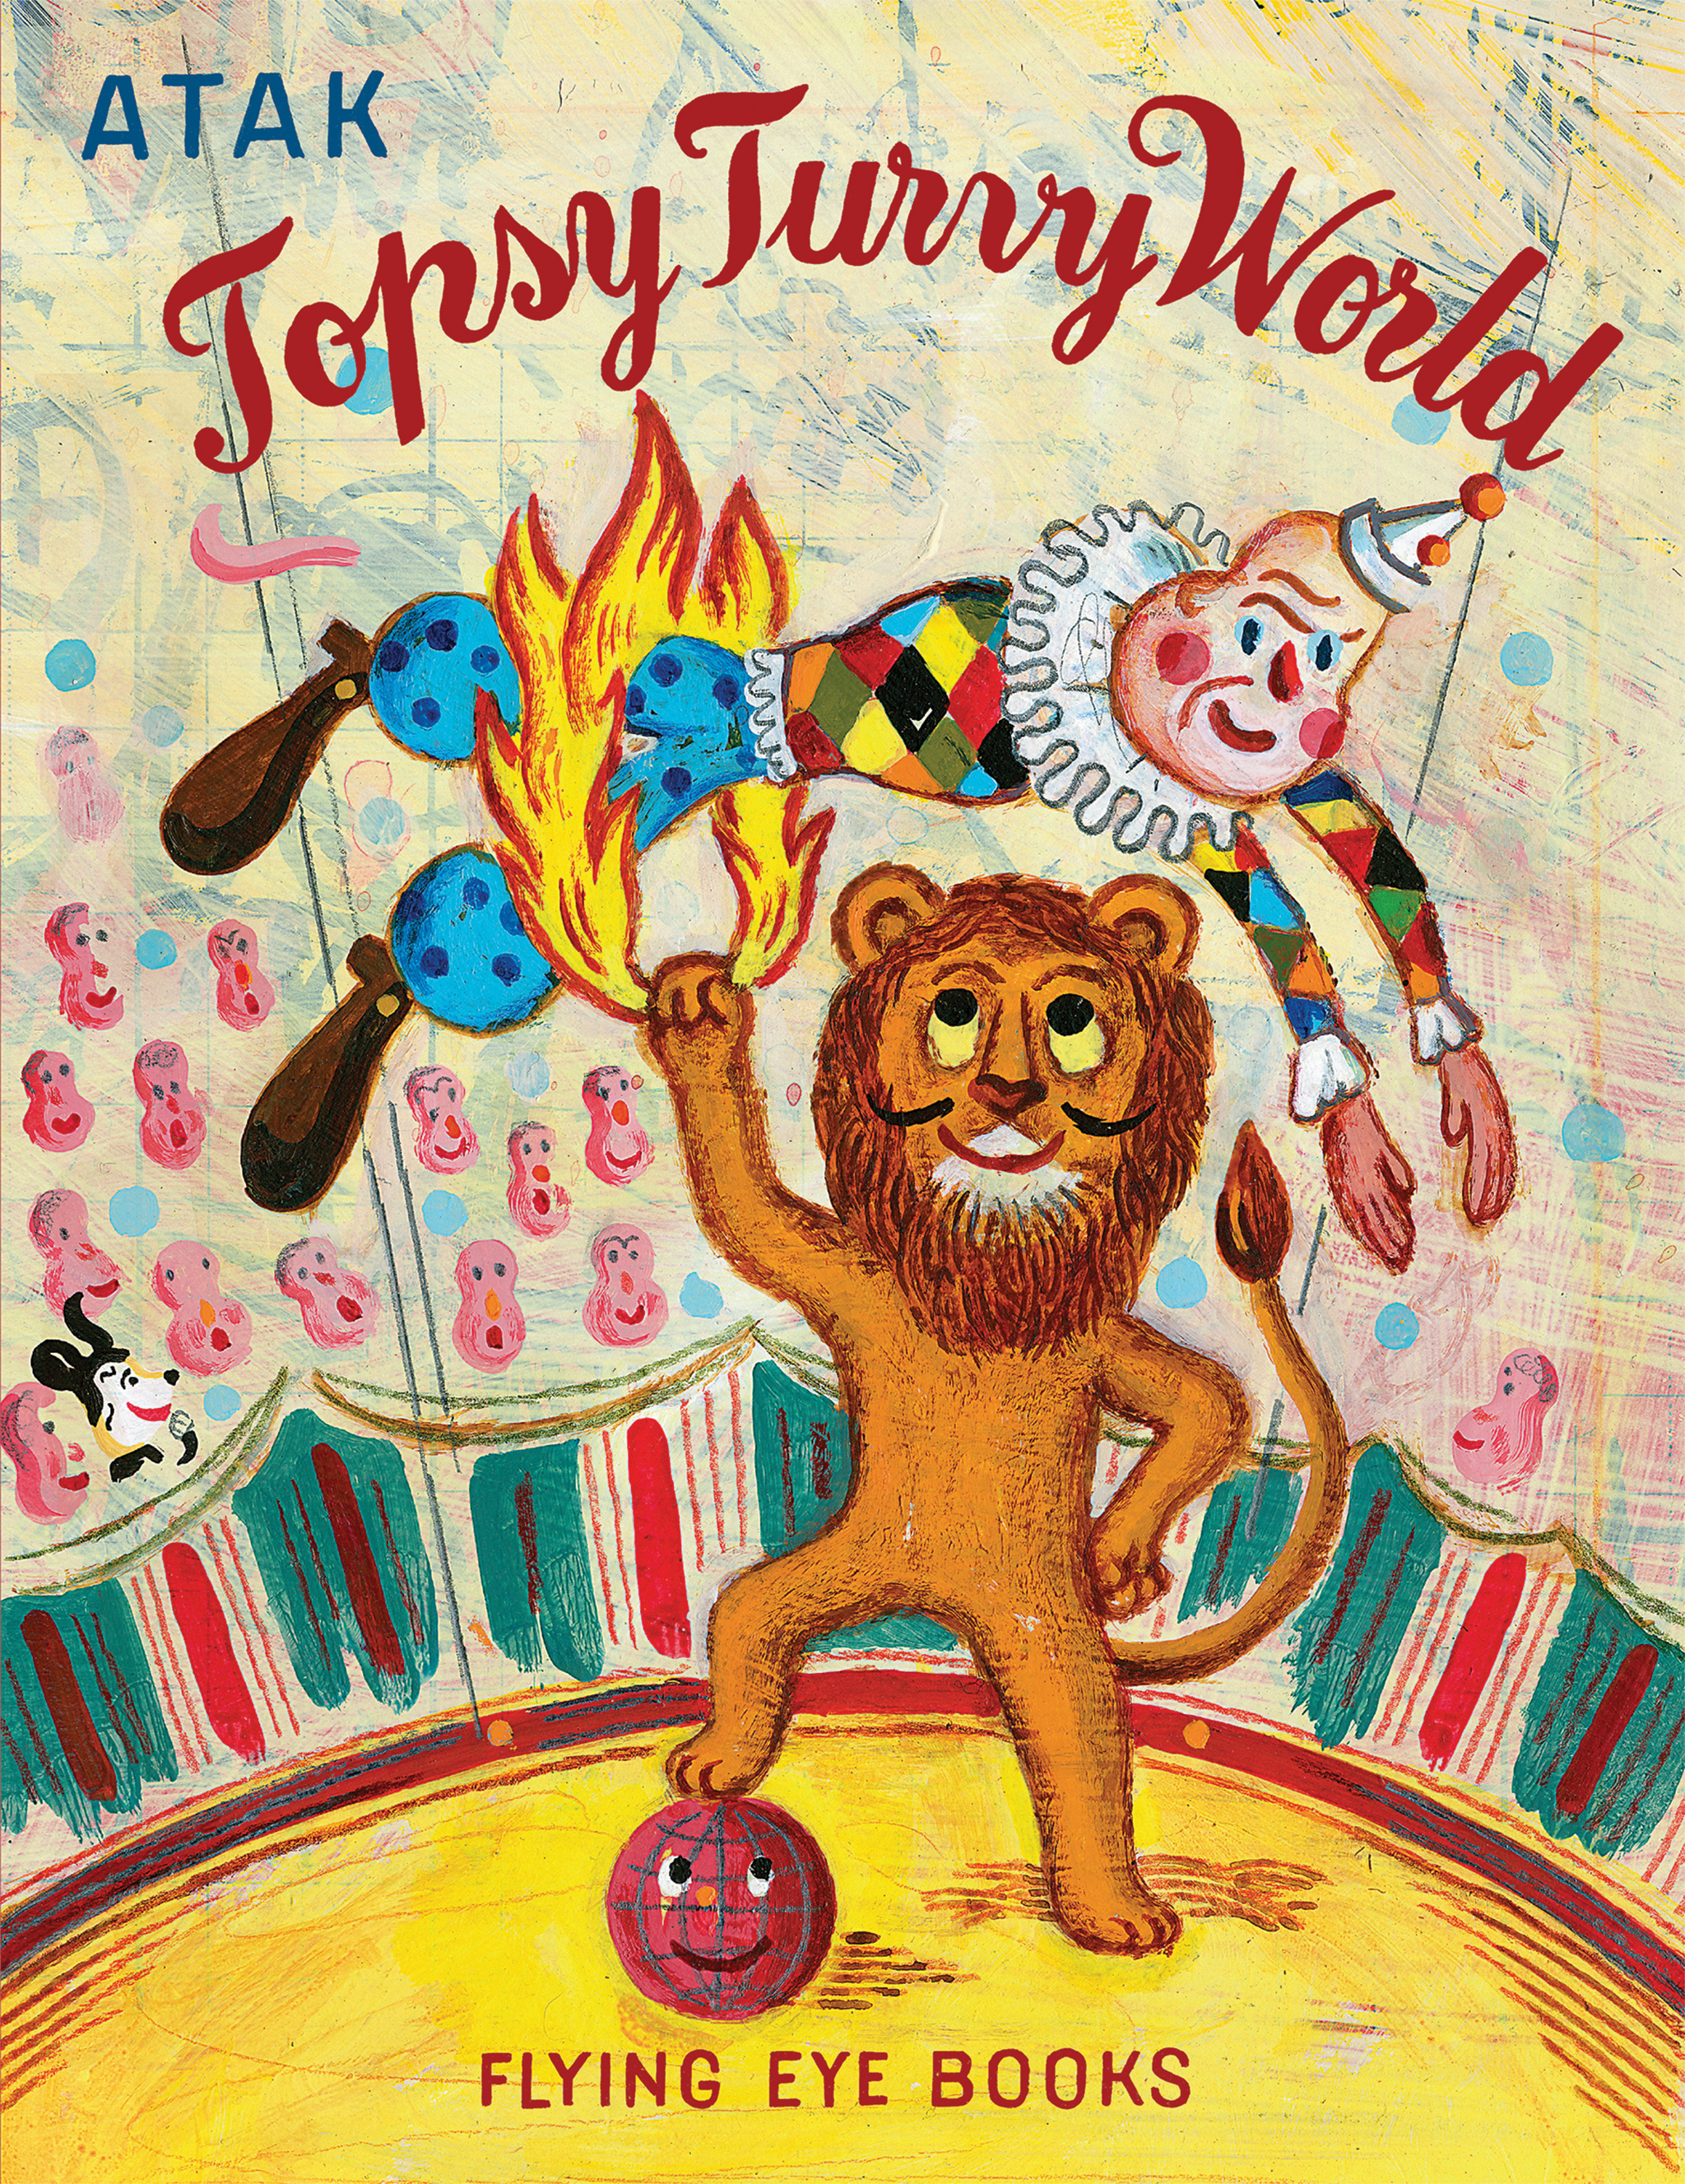 Topsy Turvy World